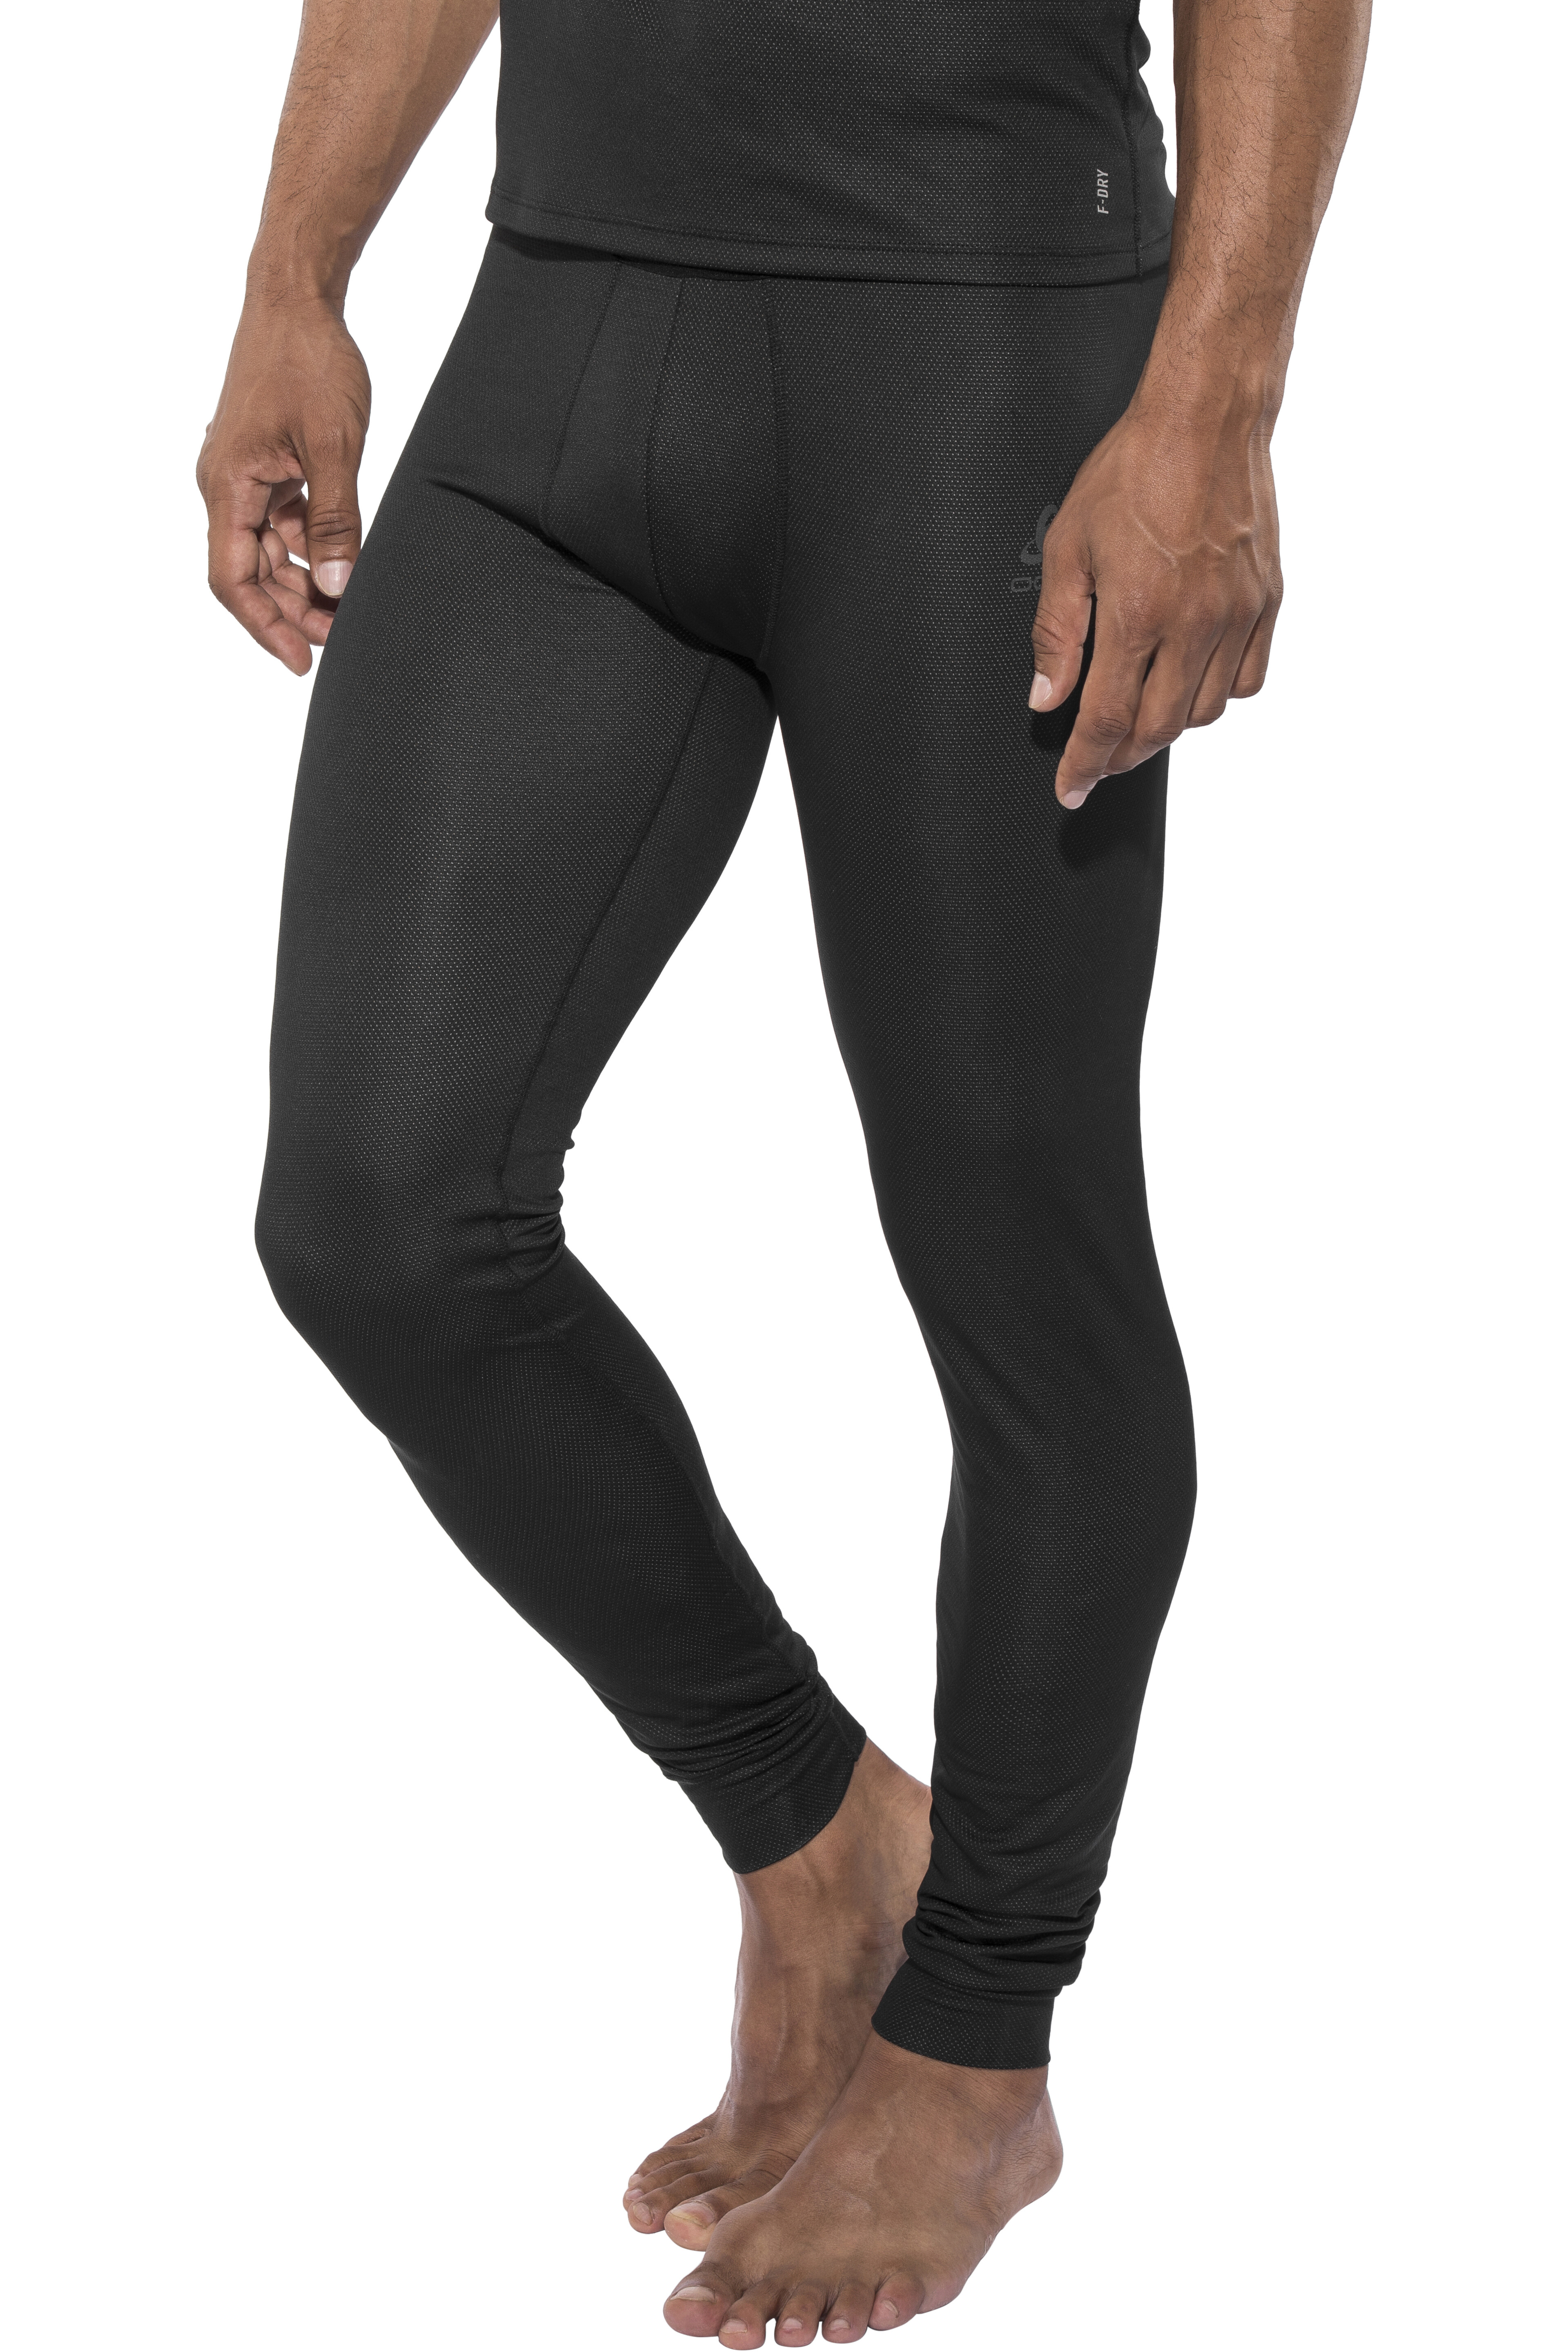 6caeeeaae5 Odlo Suw Active F-Dry Light Bottom Pants Herren black | campz.de